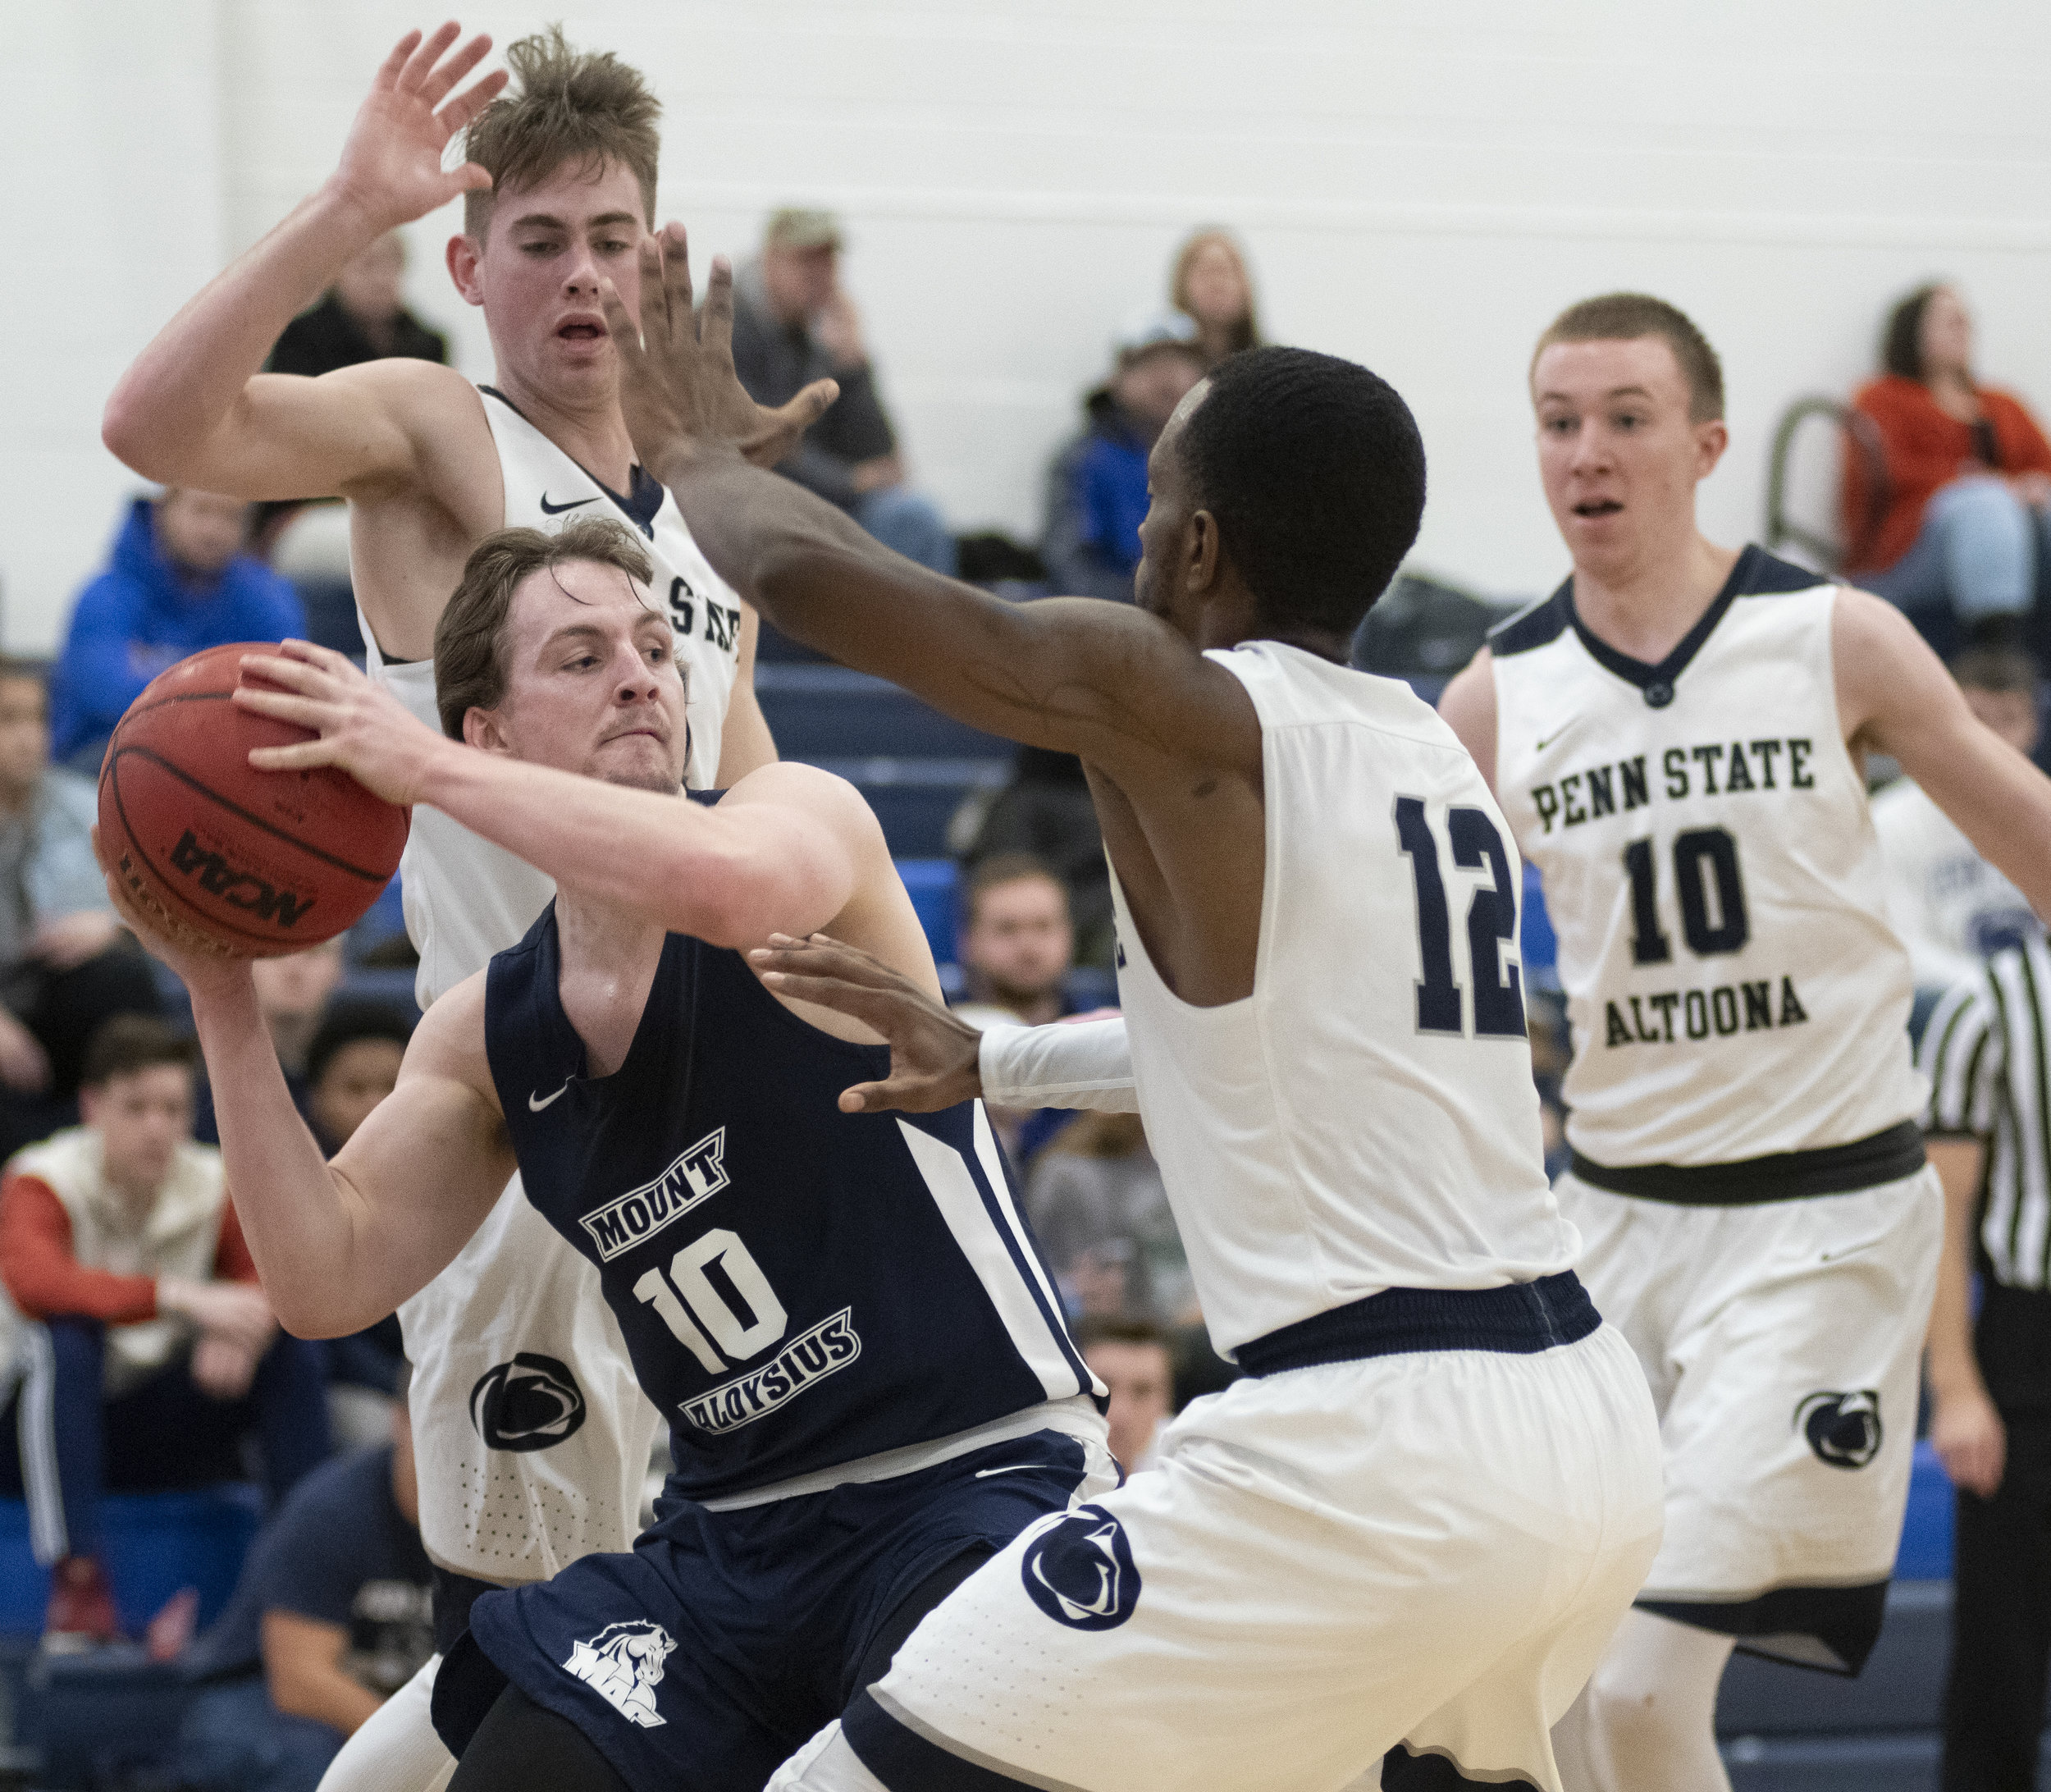 Jalen Archie-Davis (12) defends during their game against Mount Aloysius College at Adler Arena on Wednesday, Nov. 28, 2018. | Photo by: Noah Riffe